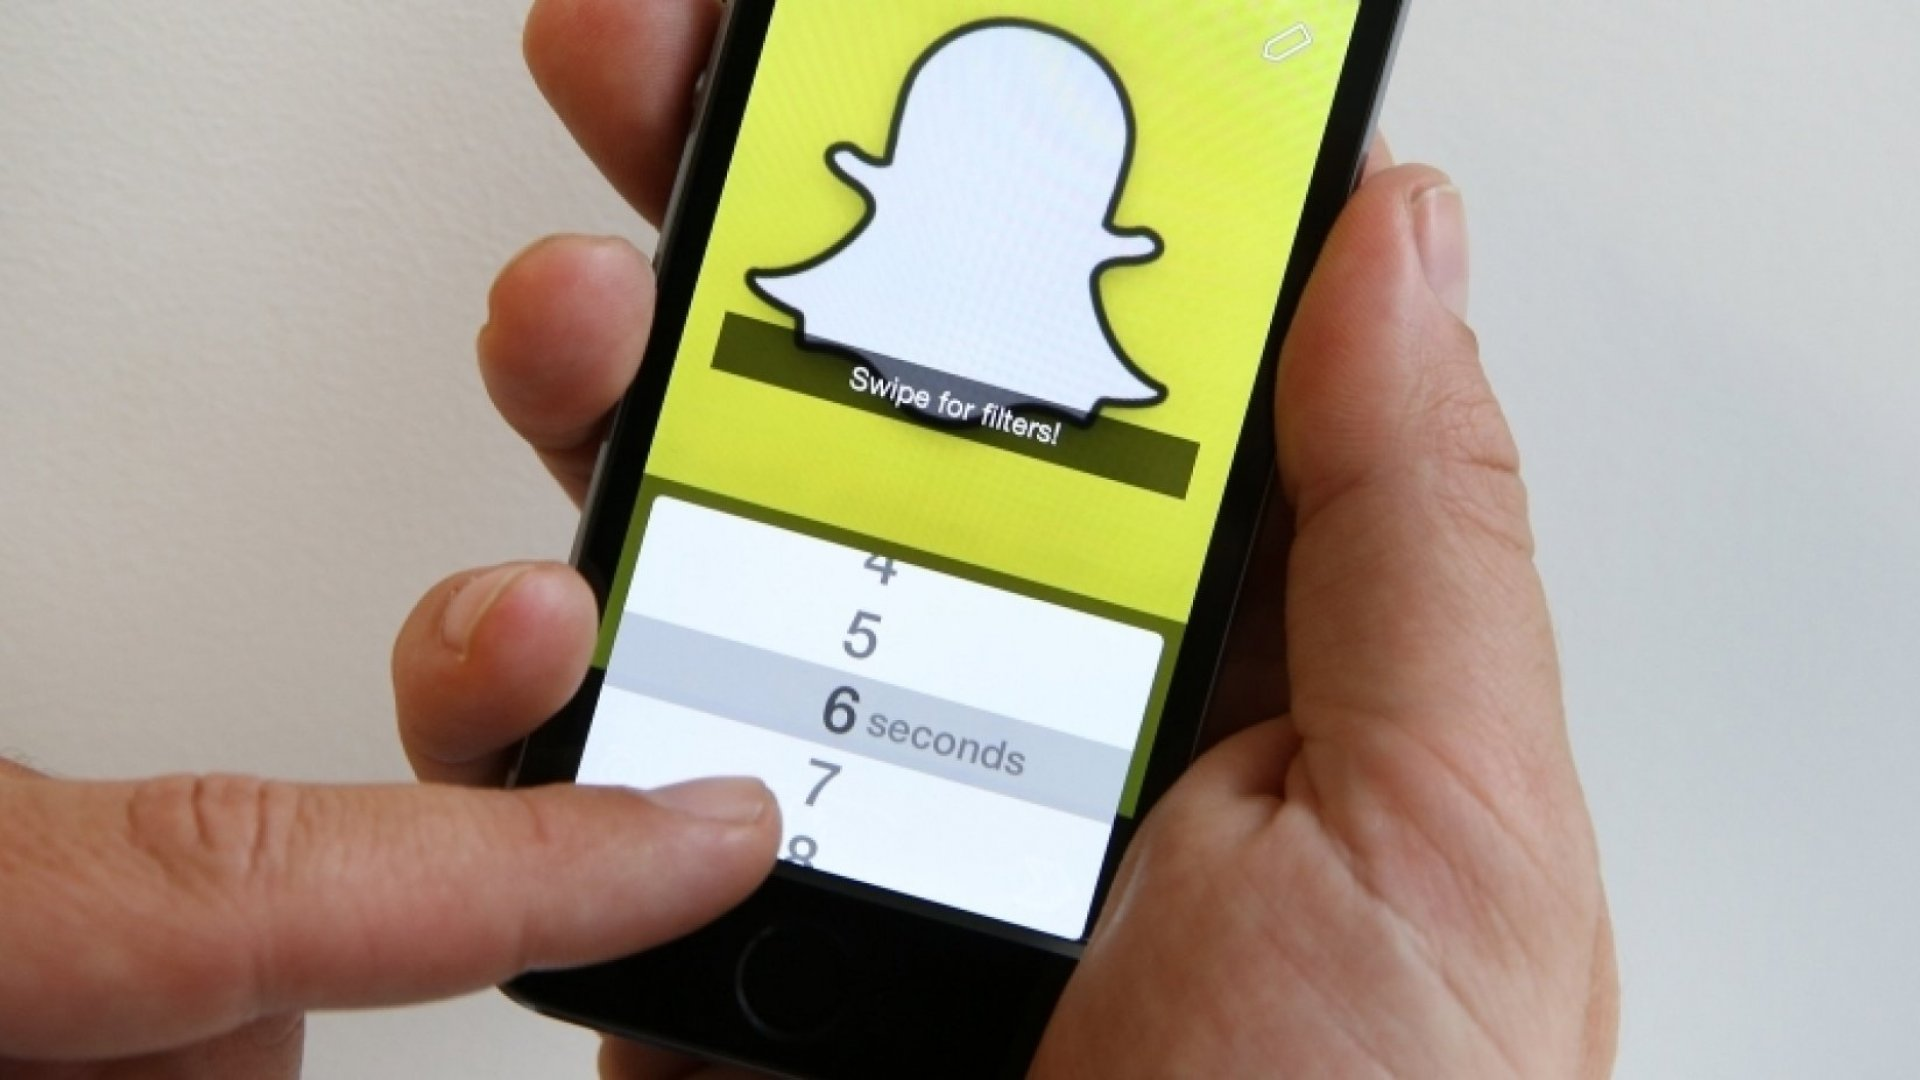 Is There a Place for Small Businesses on Snapchat?